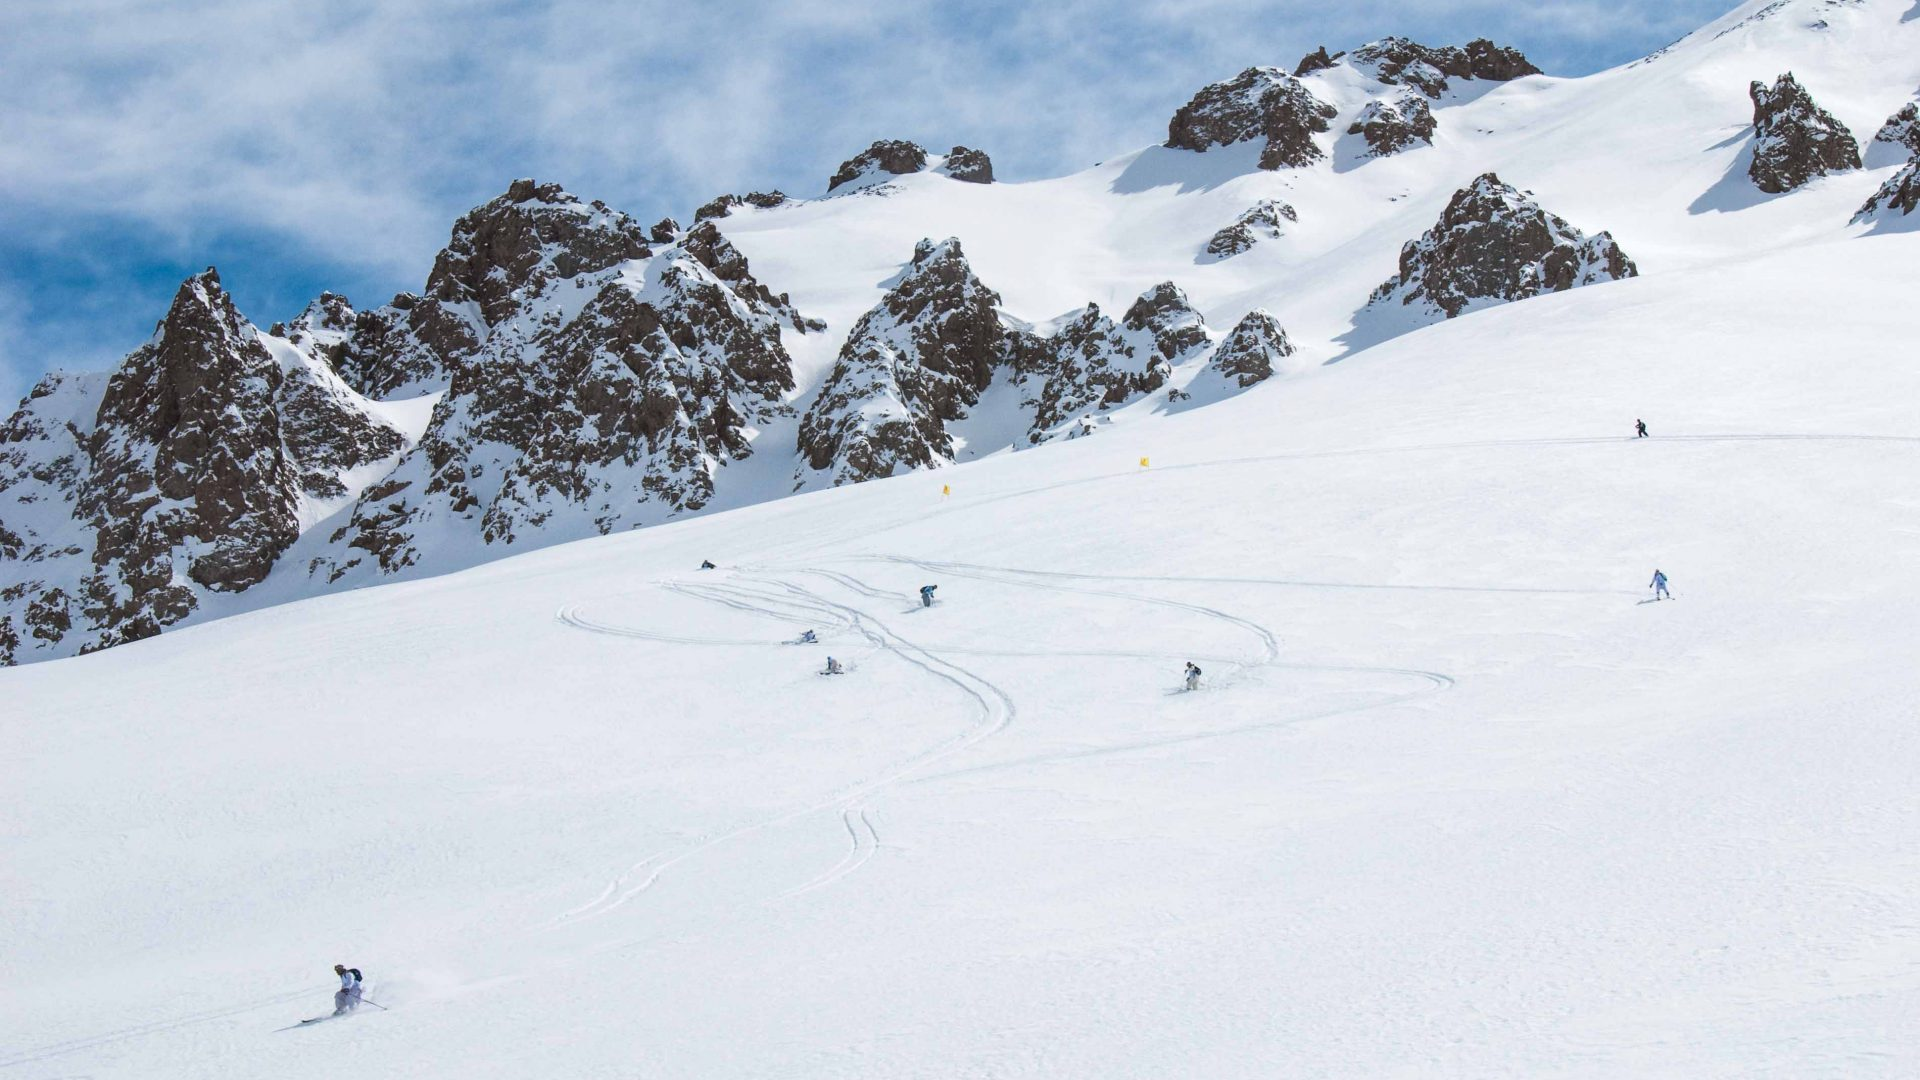 Skiers make their way down big snowy mountains in the Afghan Ski Challenge.